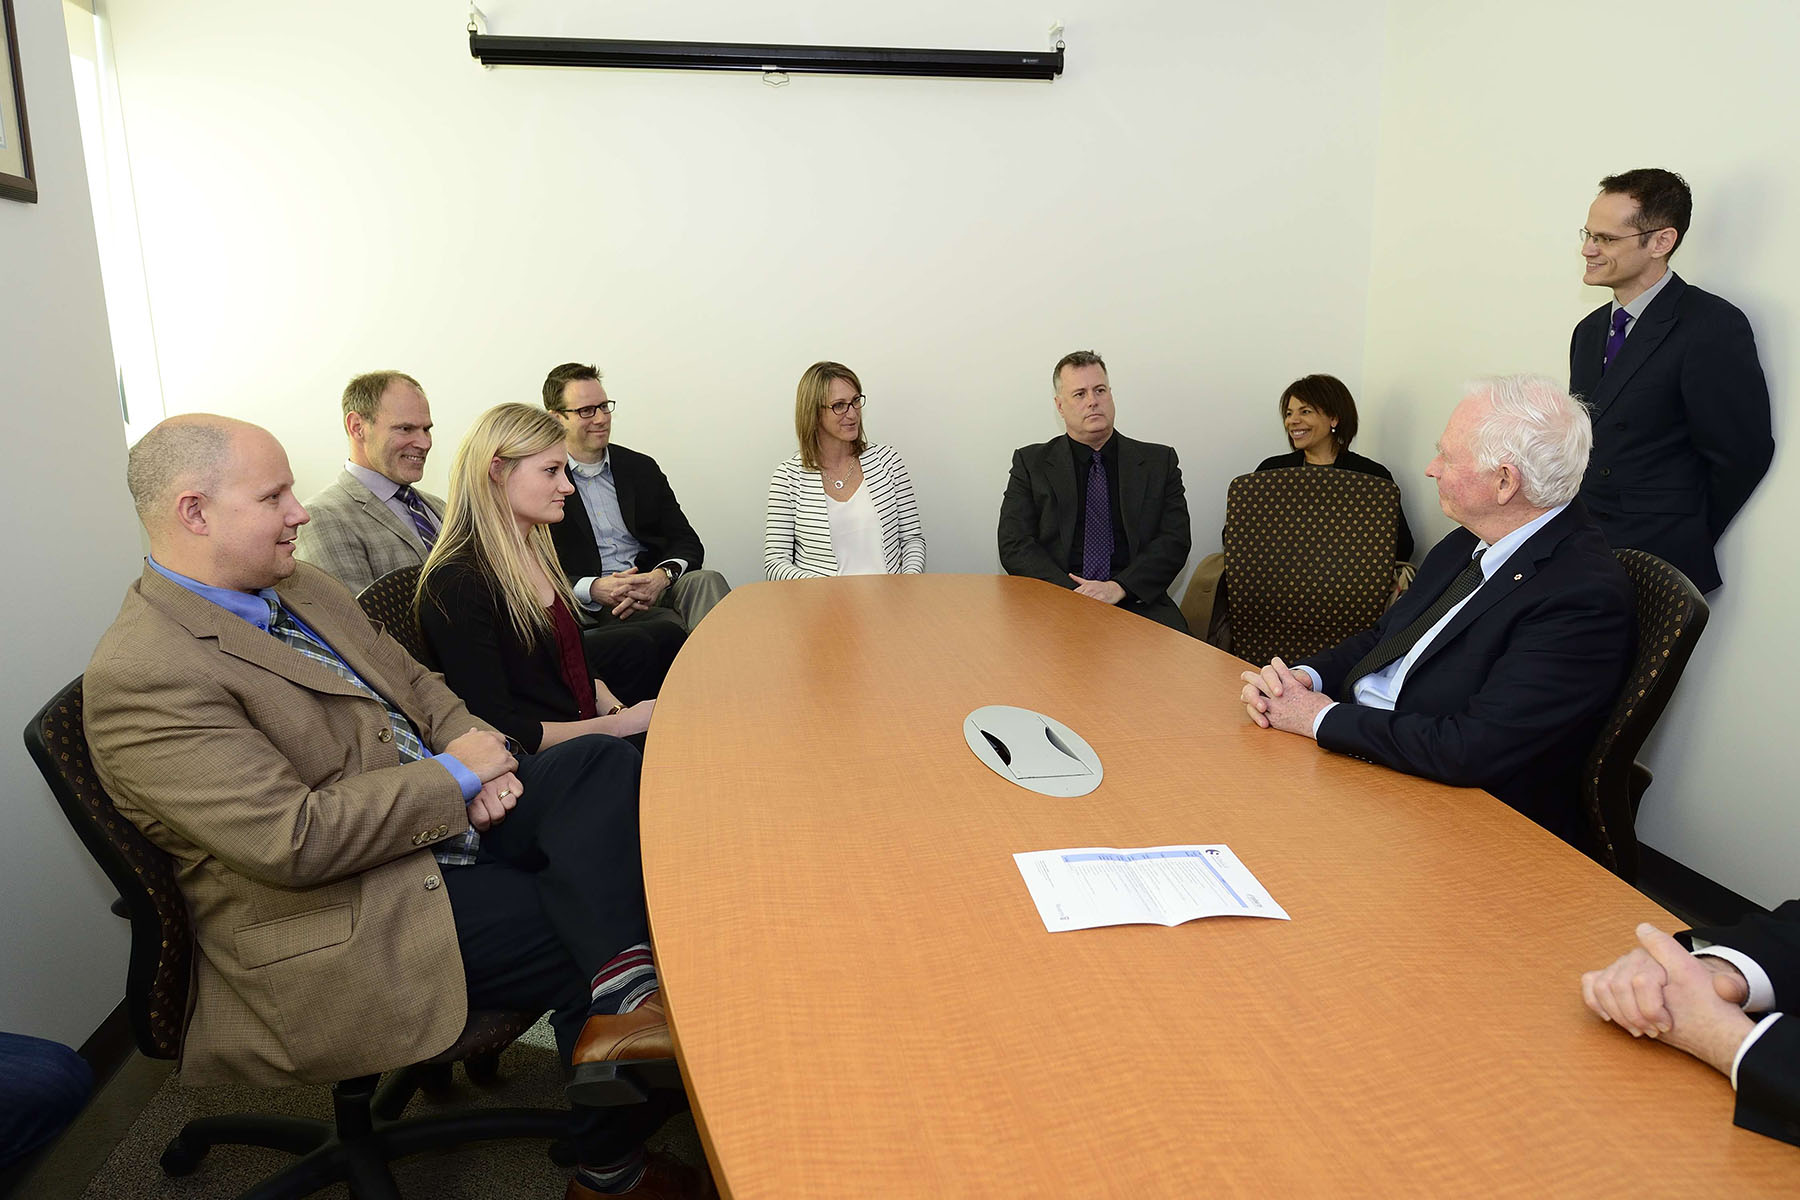 During his visit, the Governor General met scientists and graduate students who are investigating the short- and long-term consequences of concussions, as well as developing new ways of preventing and treating brain injuries.